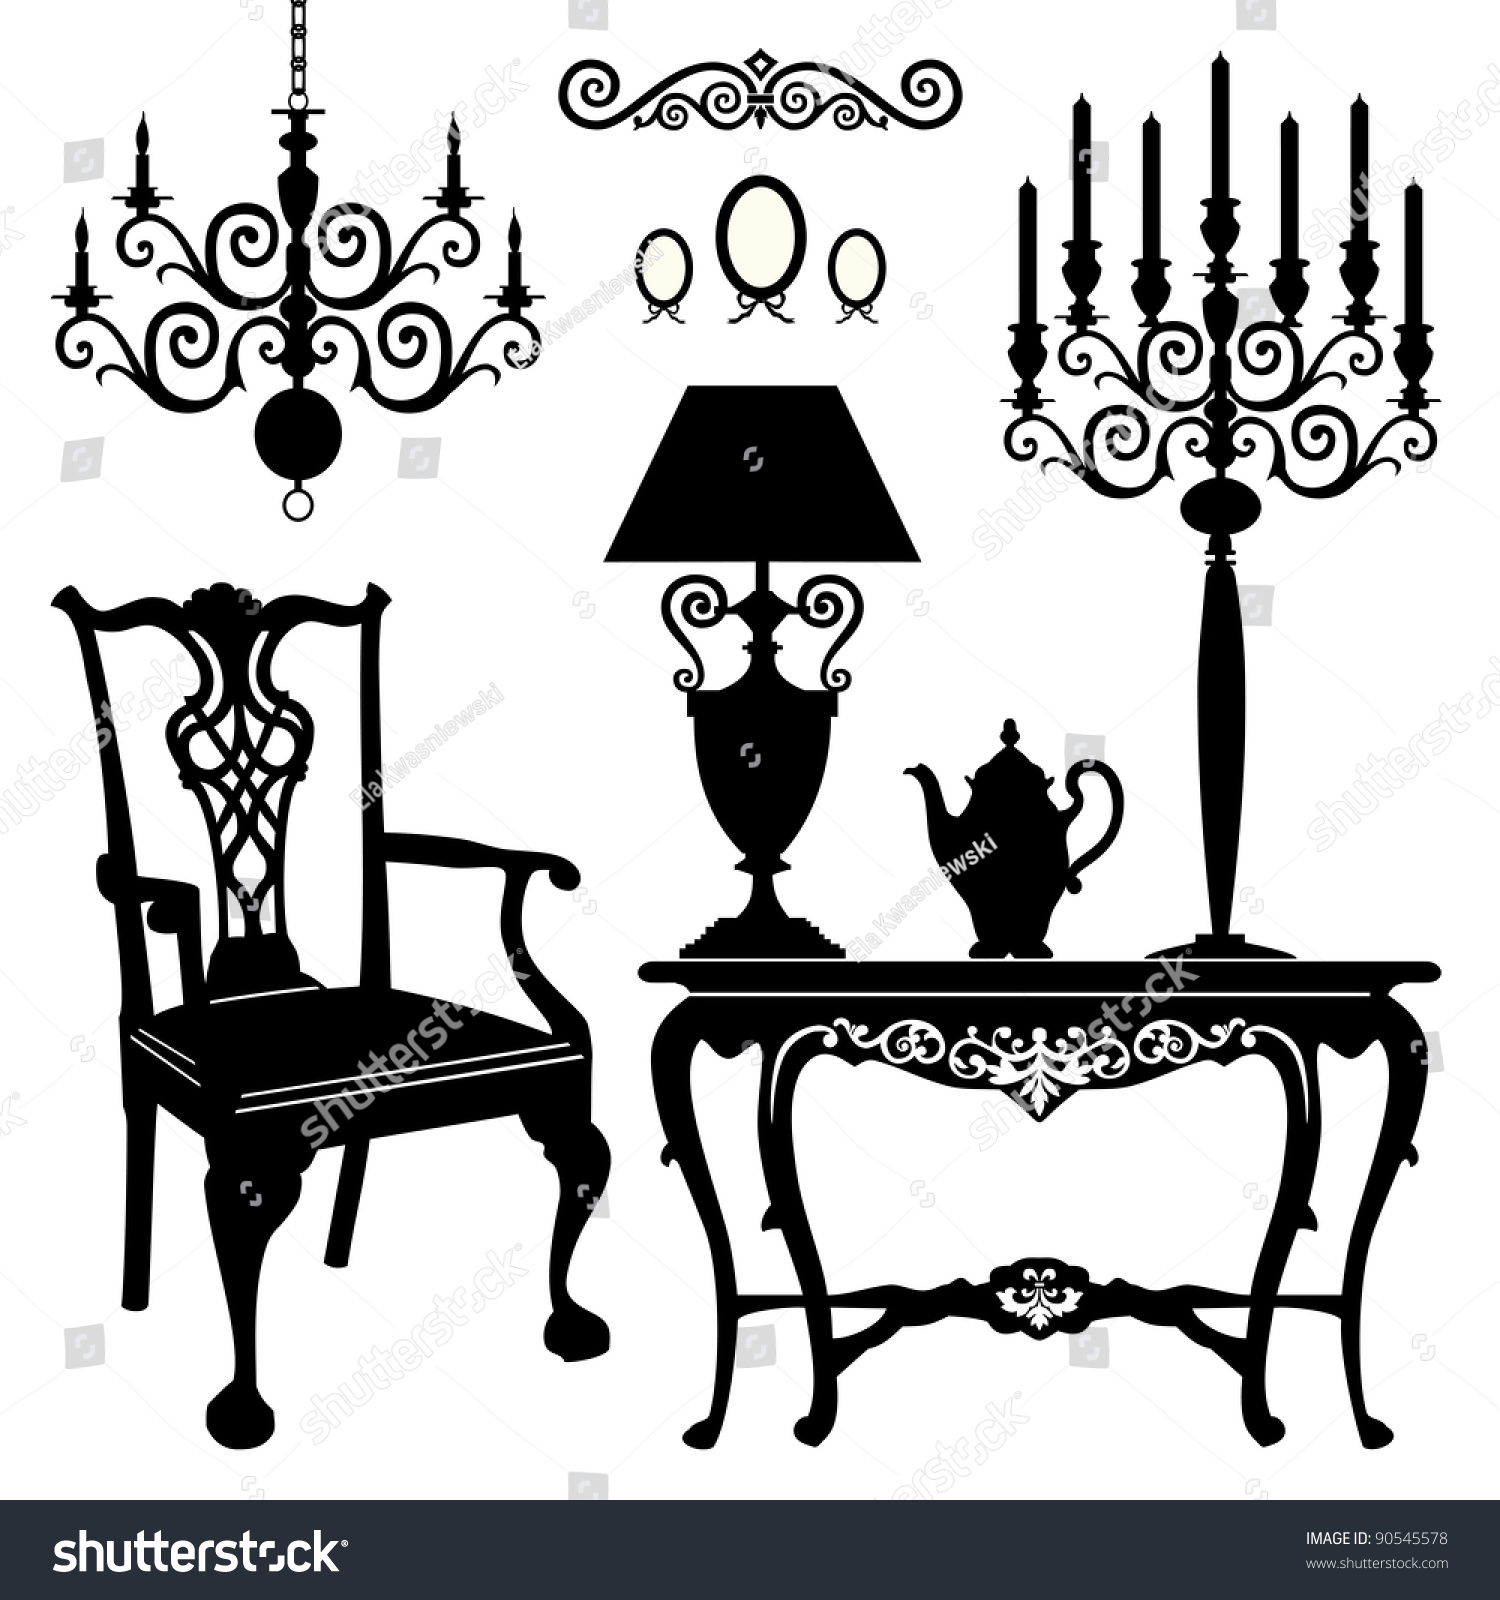 Antique chair silhouette - Antique Decorative Furniture Collection Black Silhouettes Of Furniture For Your Design Vector Illustration